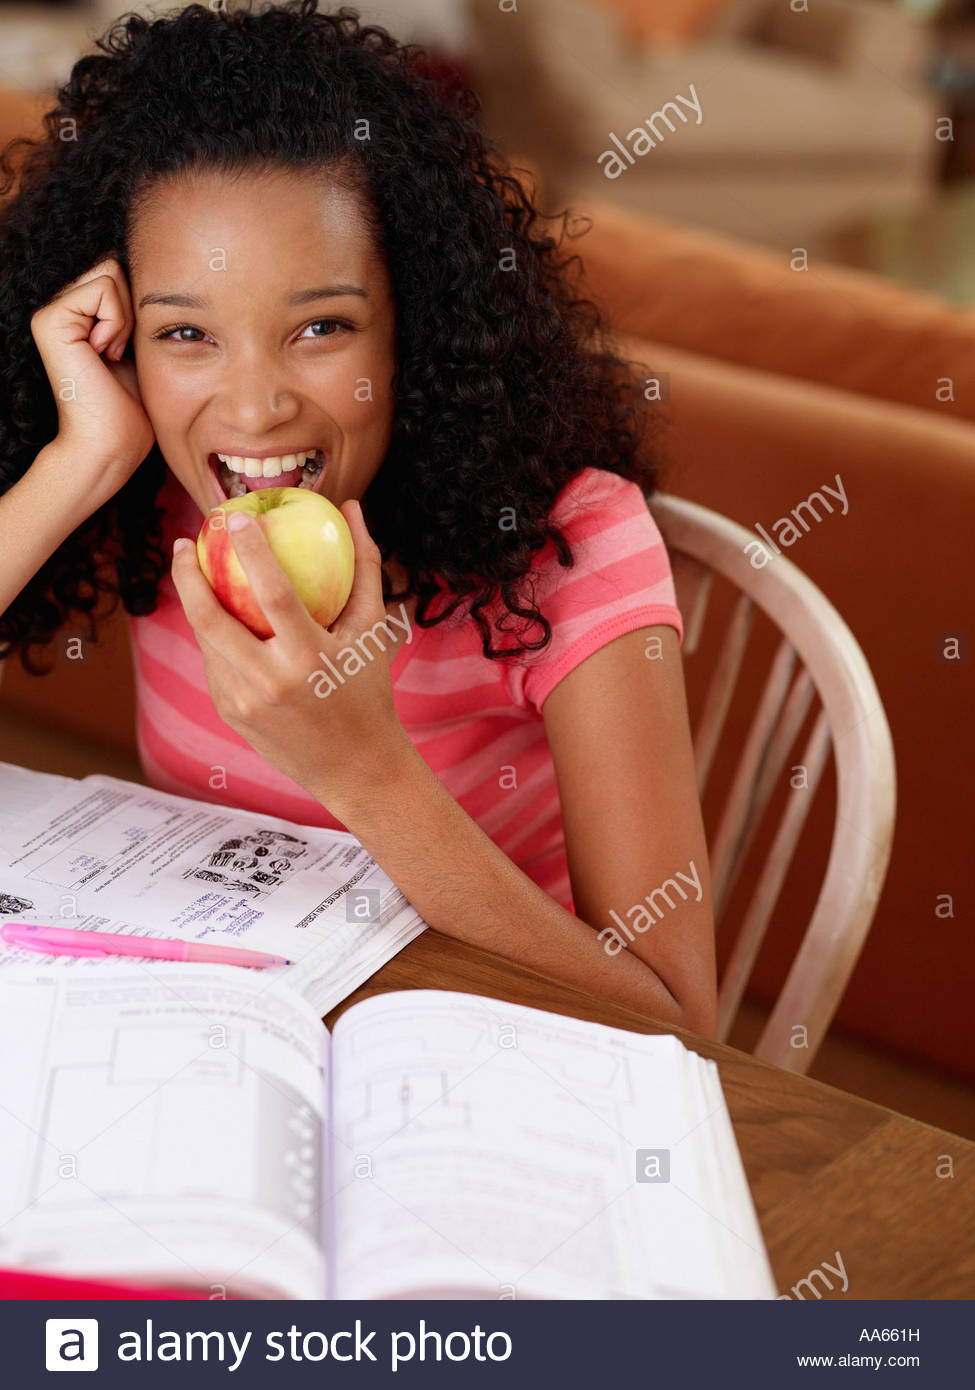 Teenage girl sitting at table with homework eating an apple - Stock Image